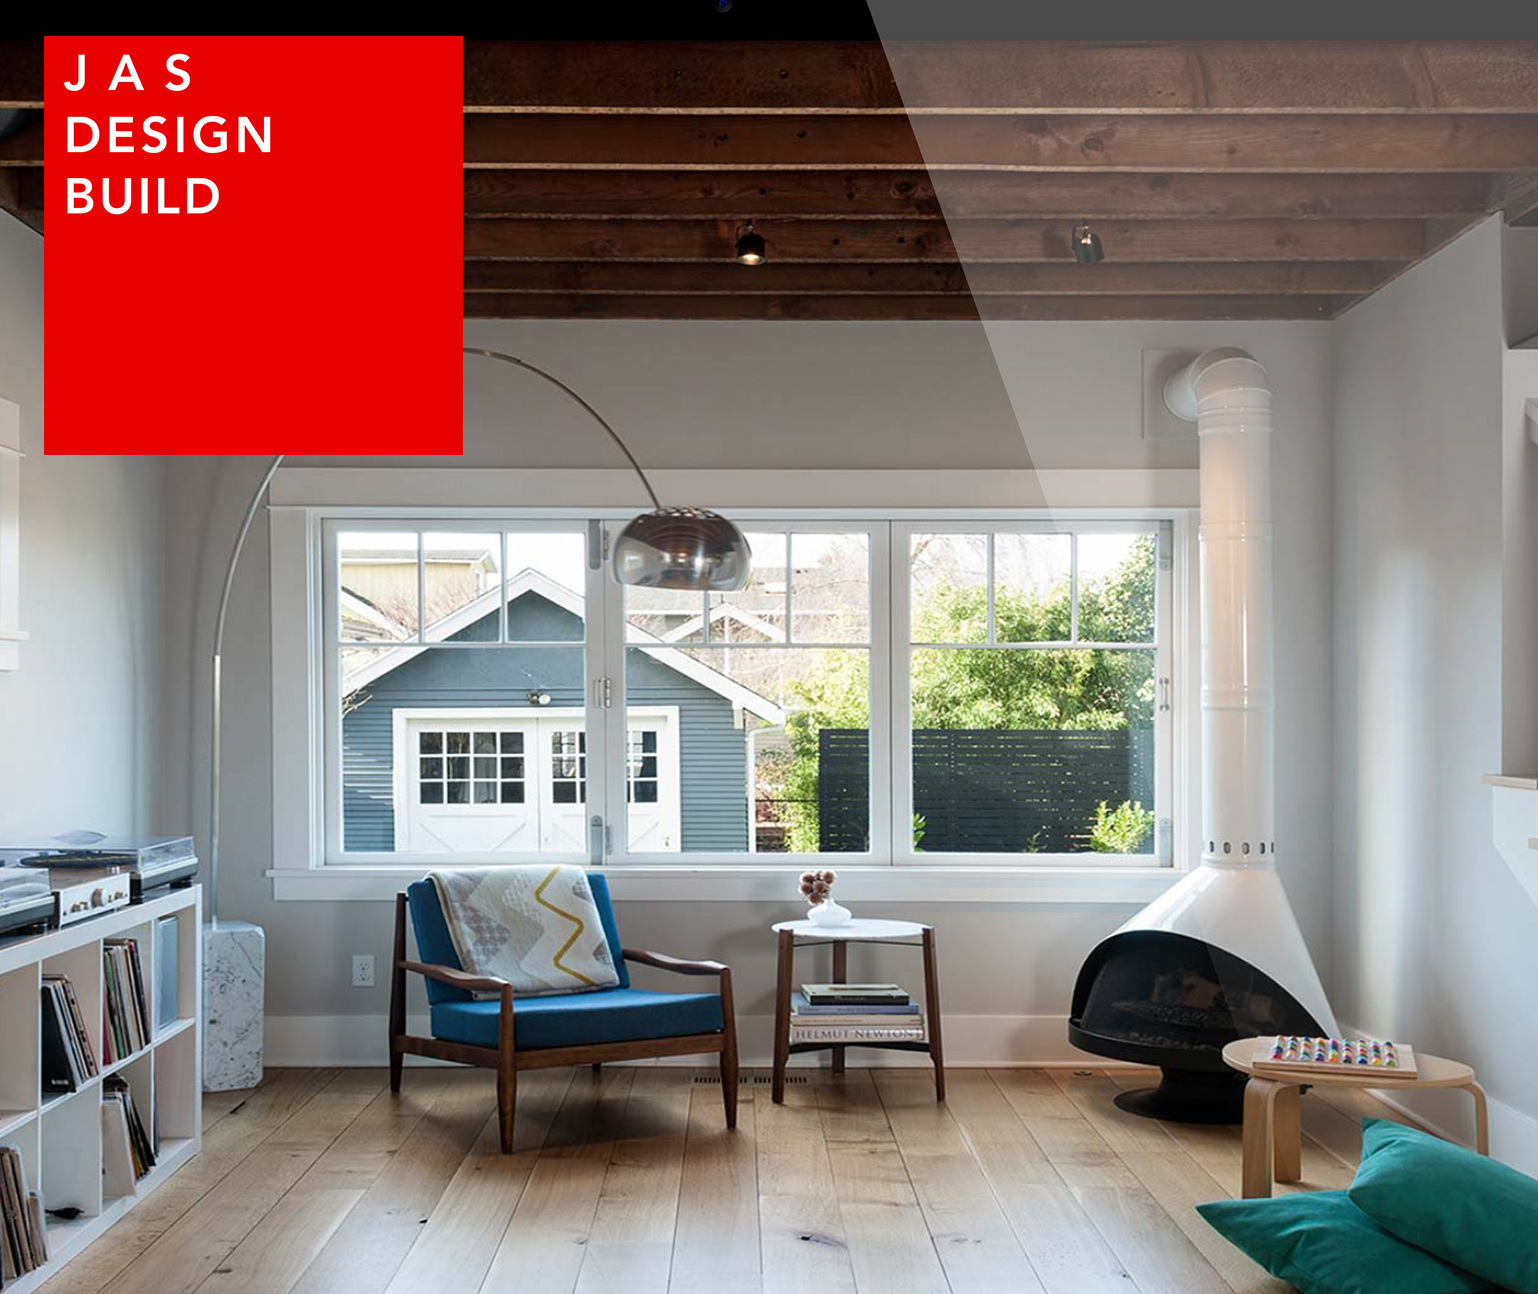 Interior of a modern living room with wood floors, JAS Design Build logo